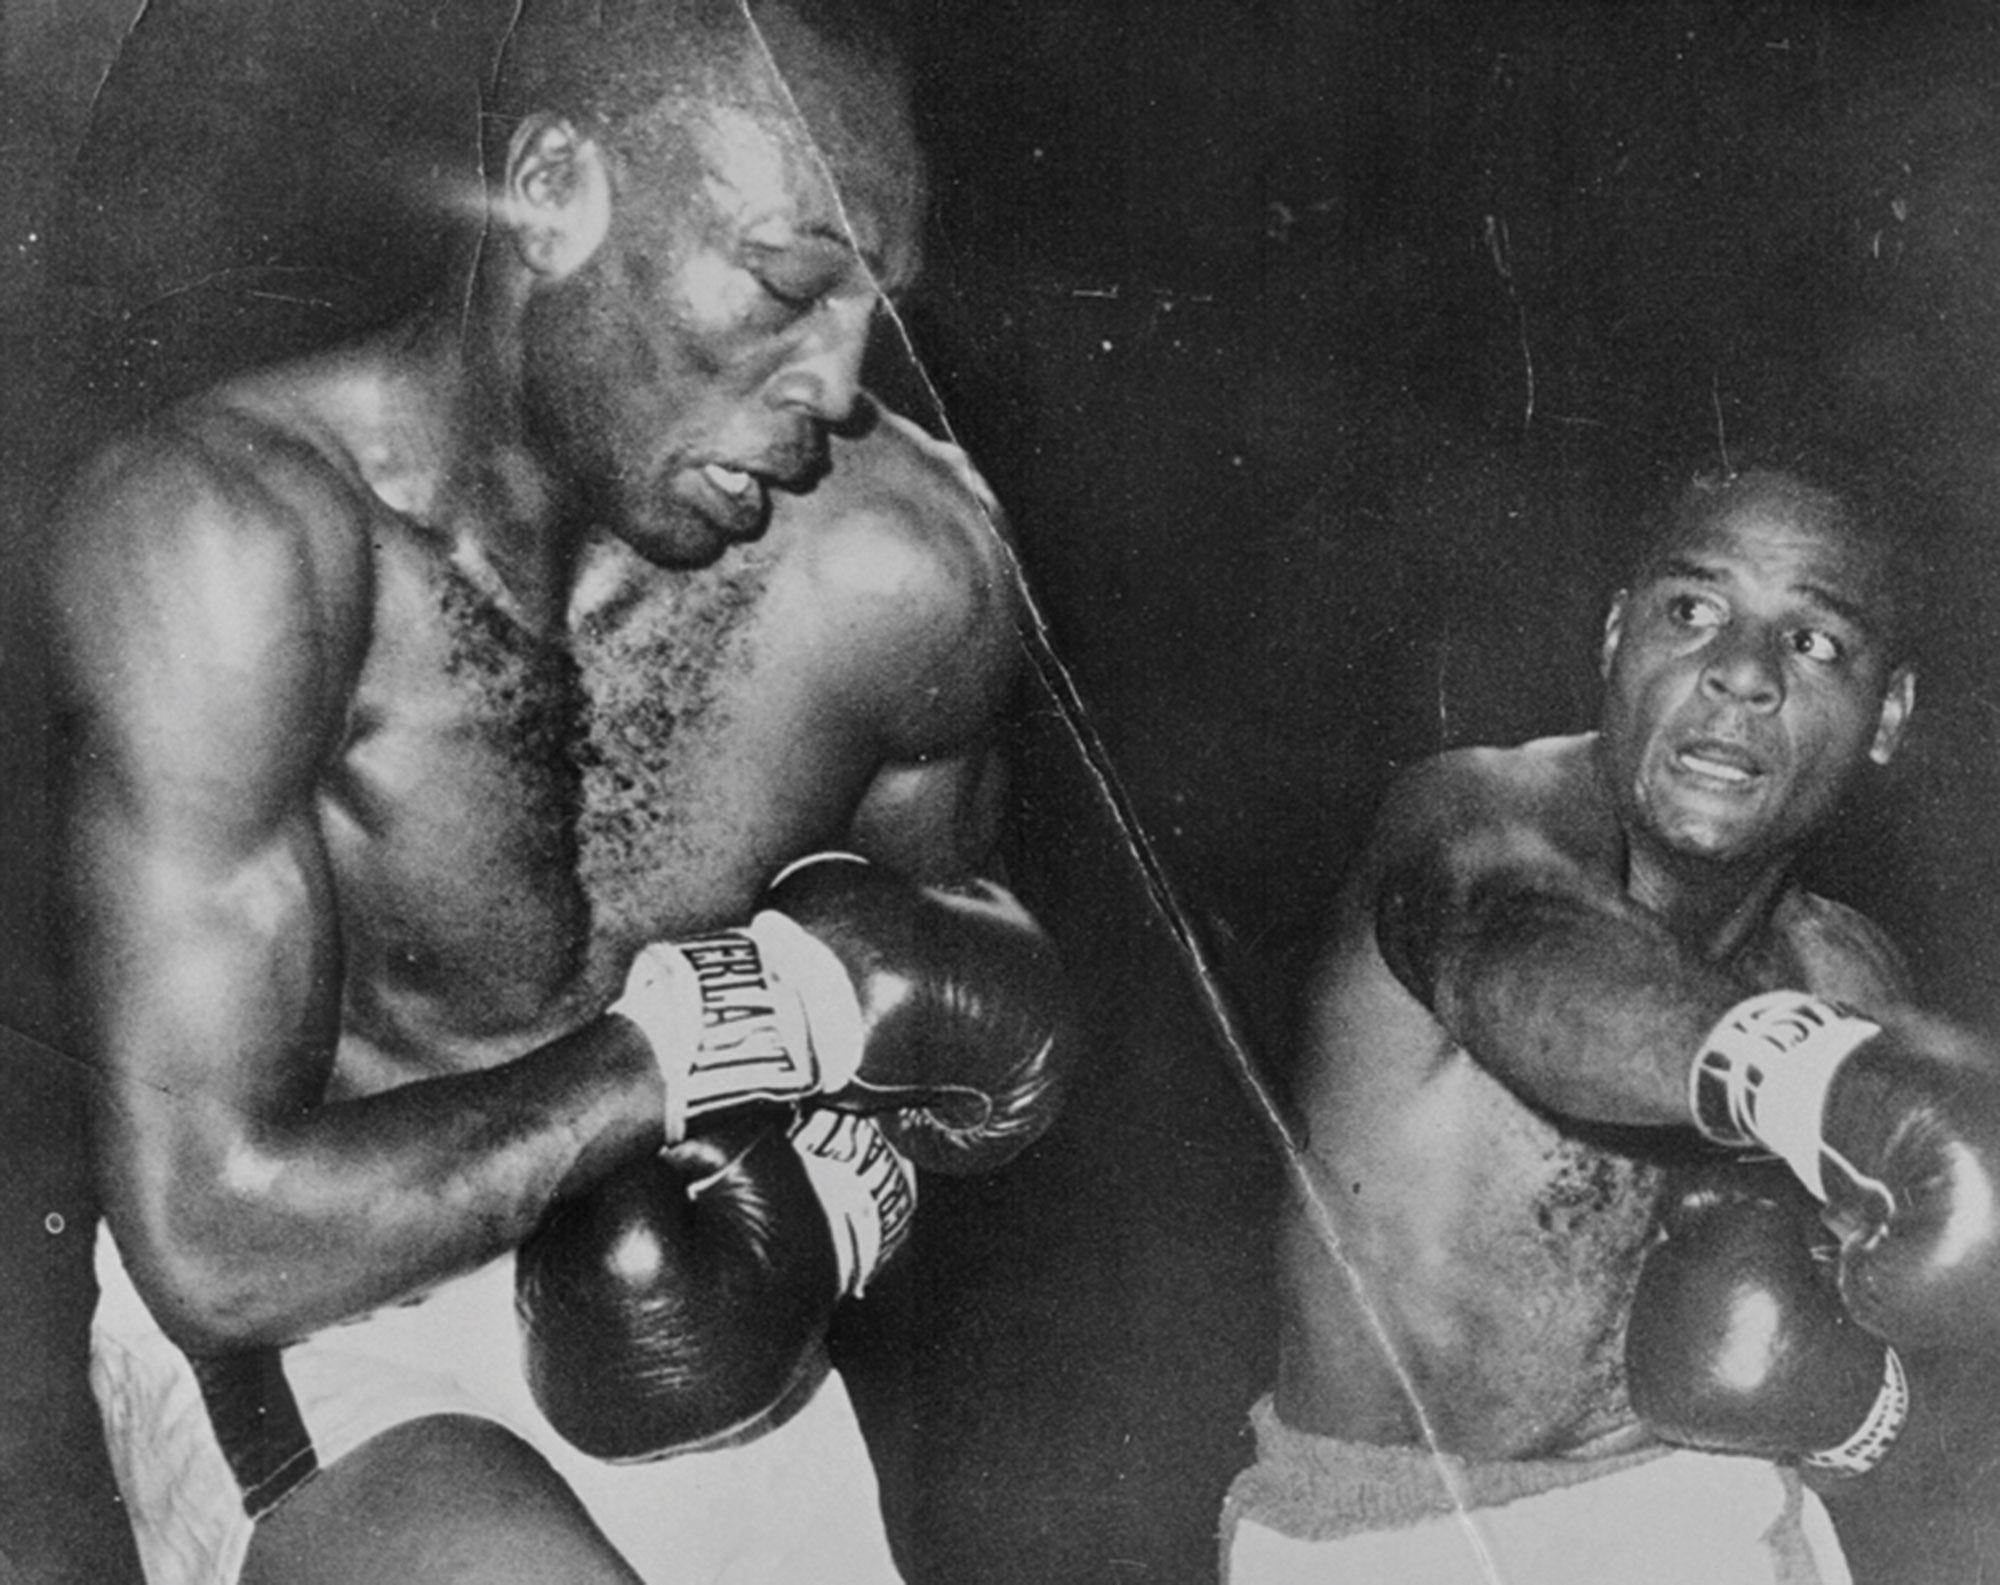 Folley hammers Bob Foster on December 6, 1965, at a bout in New Orleans' Municipal Auditorium; Photo courtesy Chandler Museum